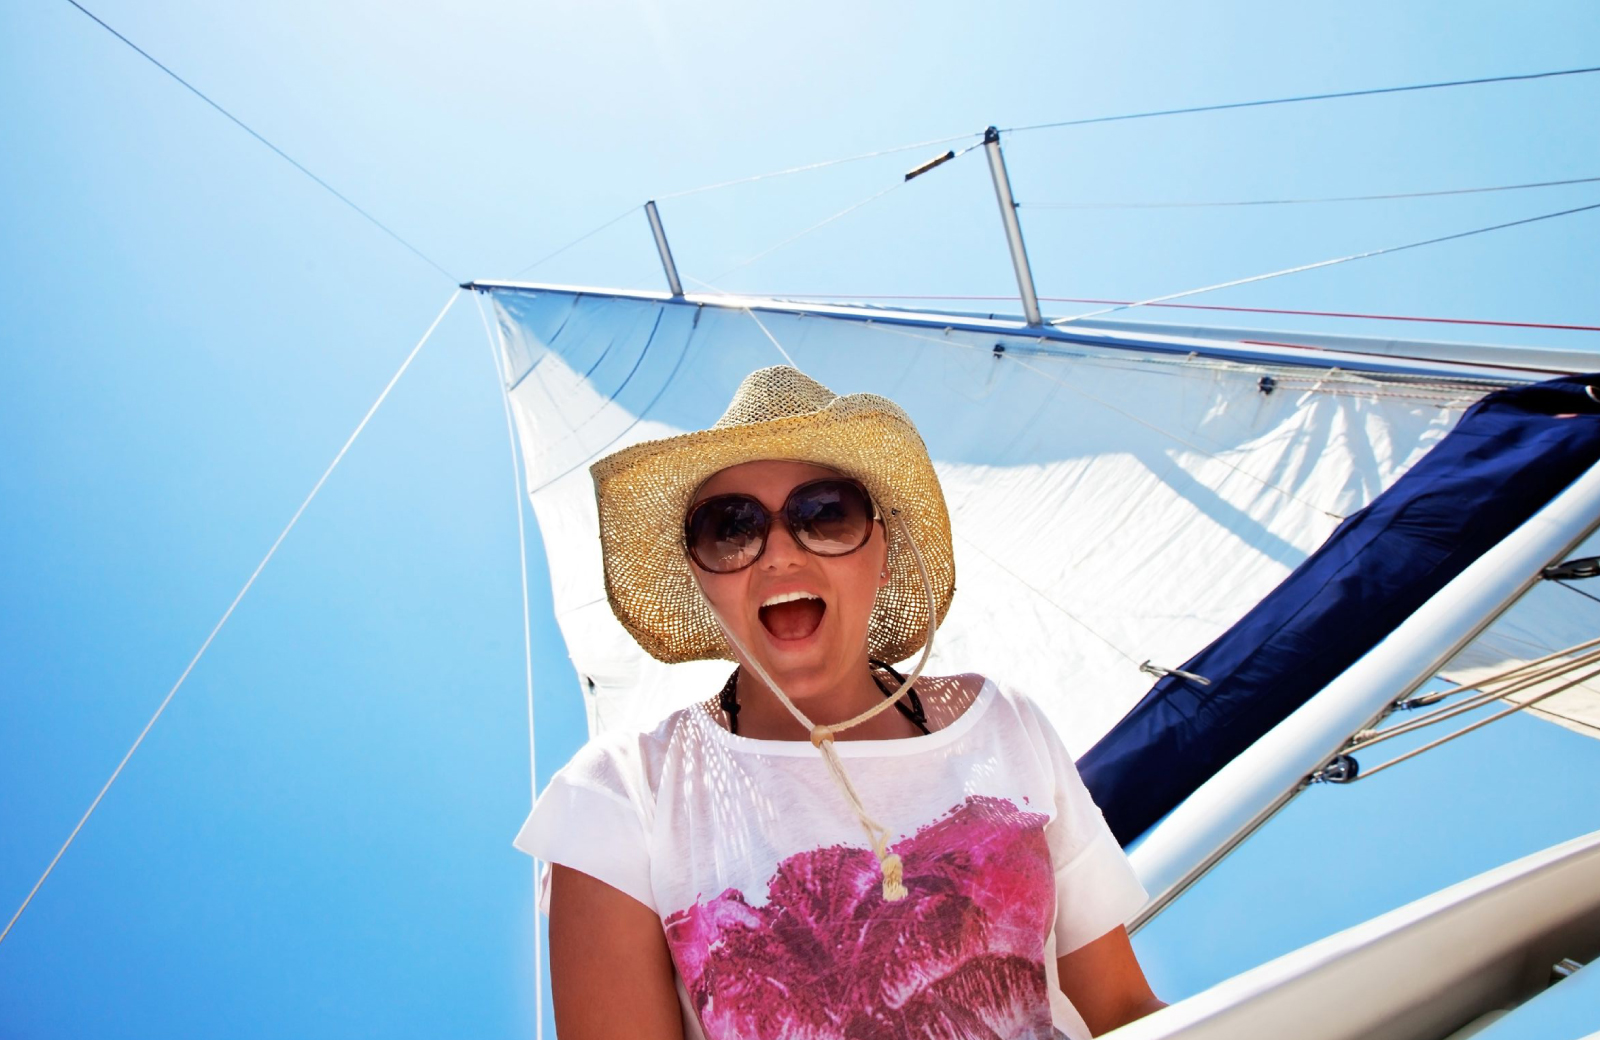 happy woman on a sailboat - sweetheart sail - the Vue